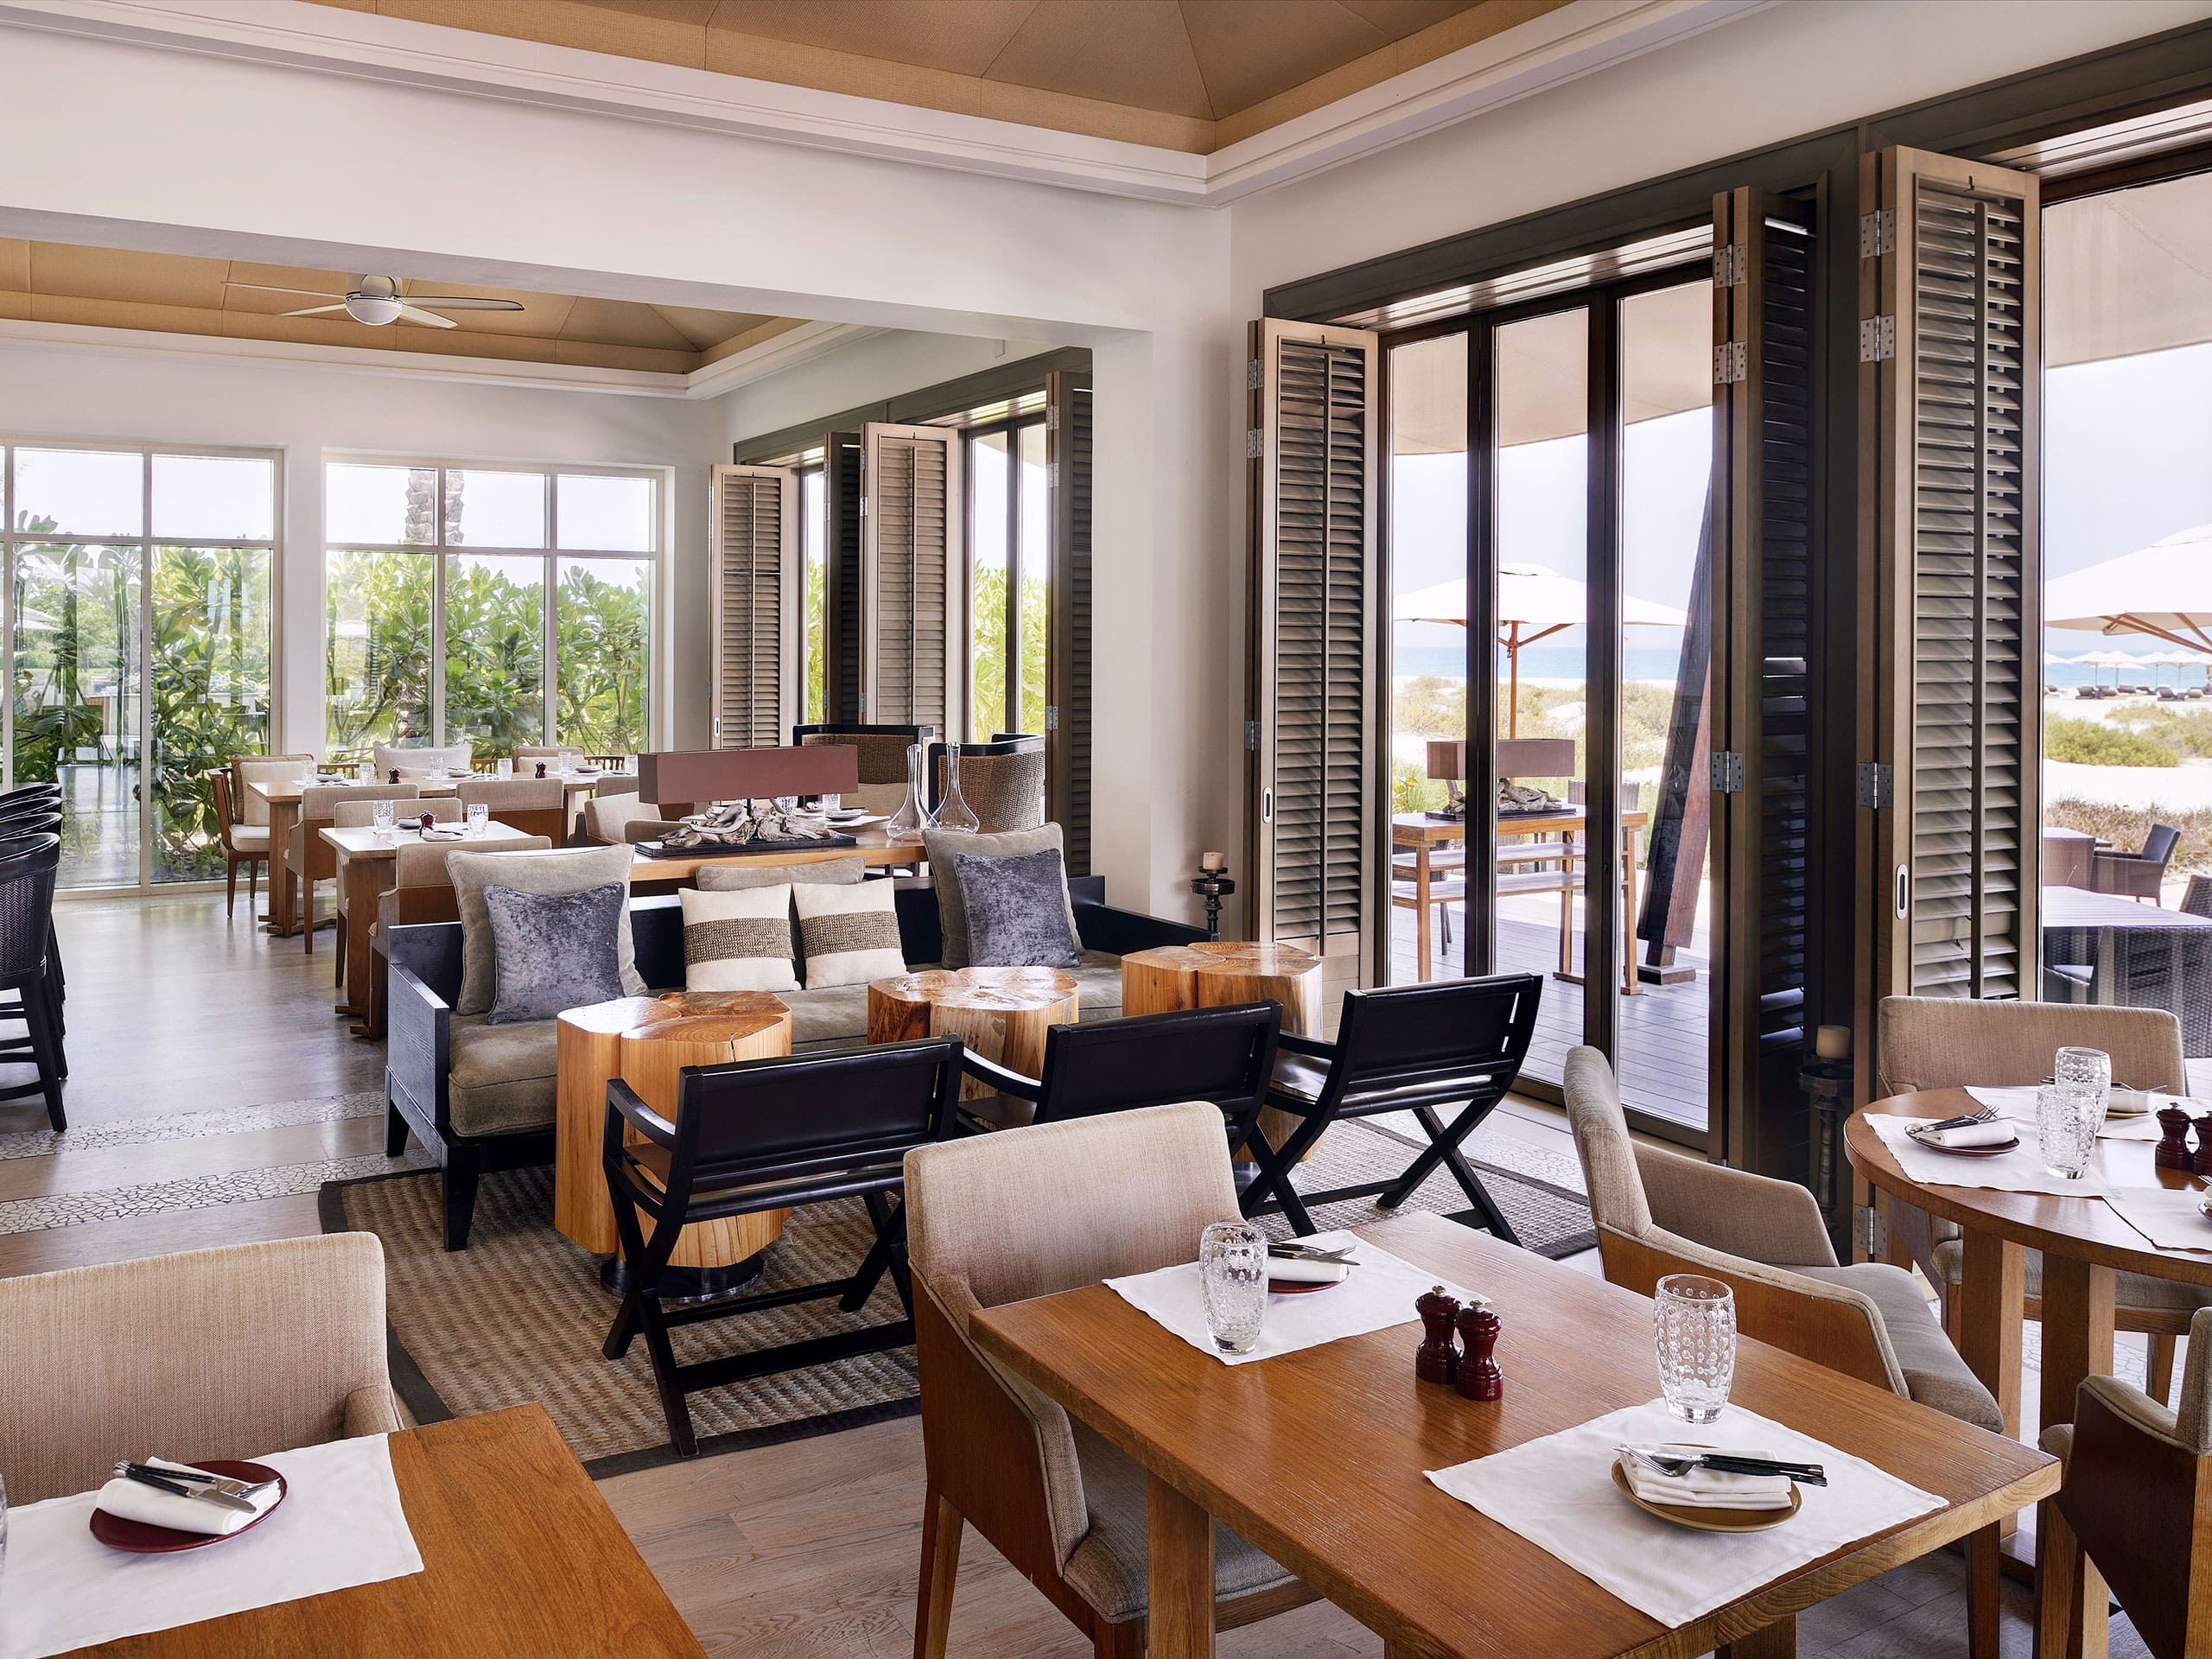 living room restaurant abu dhabi how to decorate a very small apartment best restaurants in park hyatt